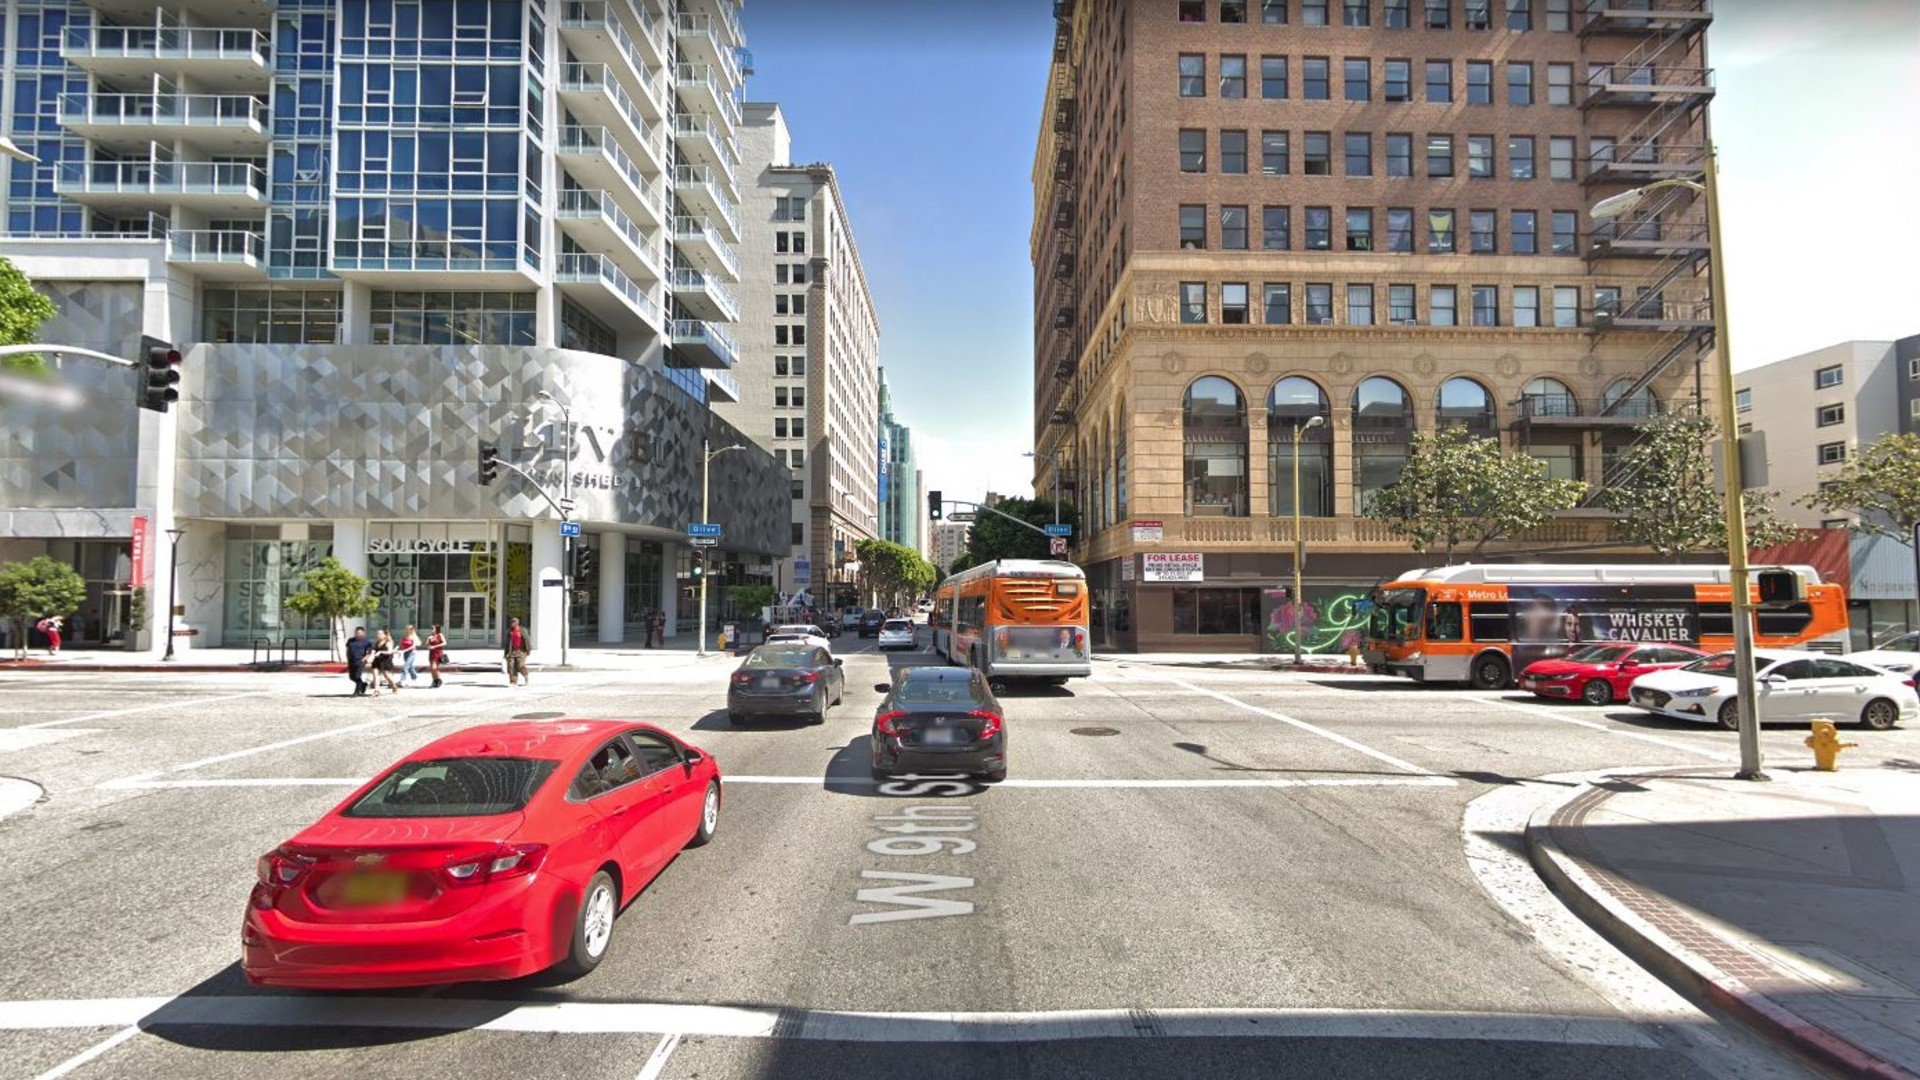 The intersection of Olive and 9th streets in downtown Los Angeles, as pictured in a Google Street View image.